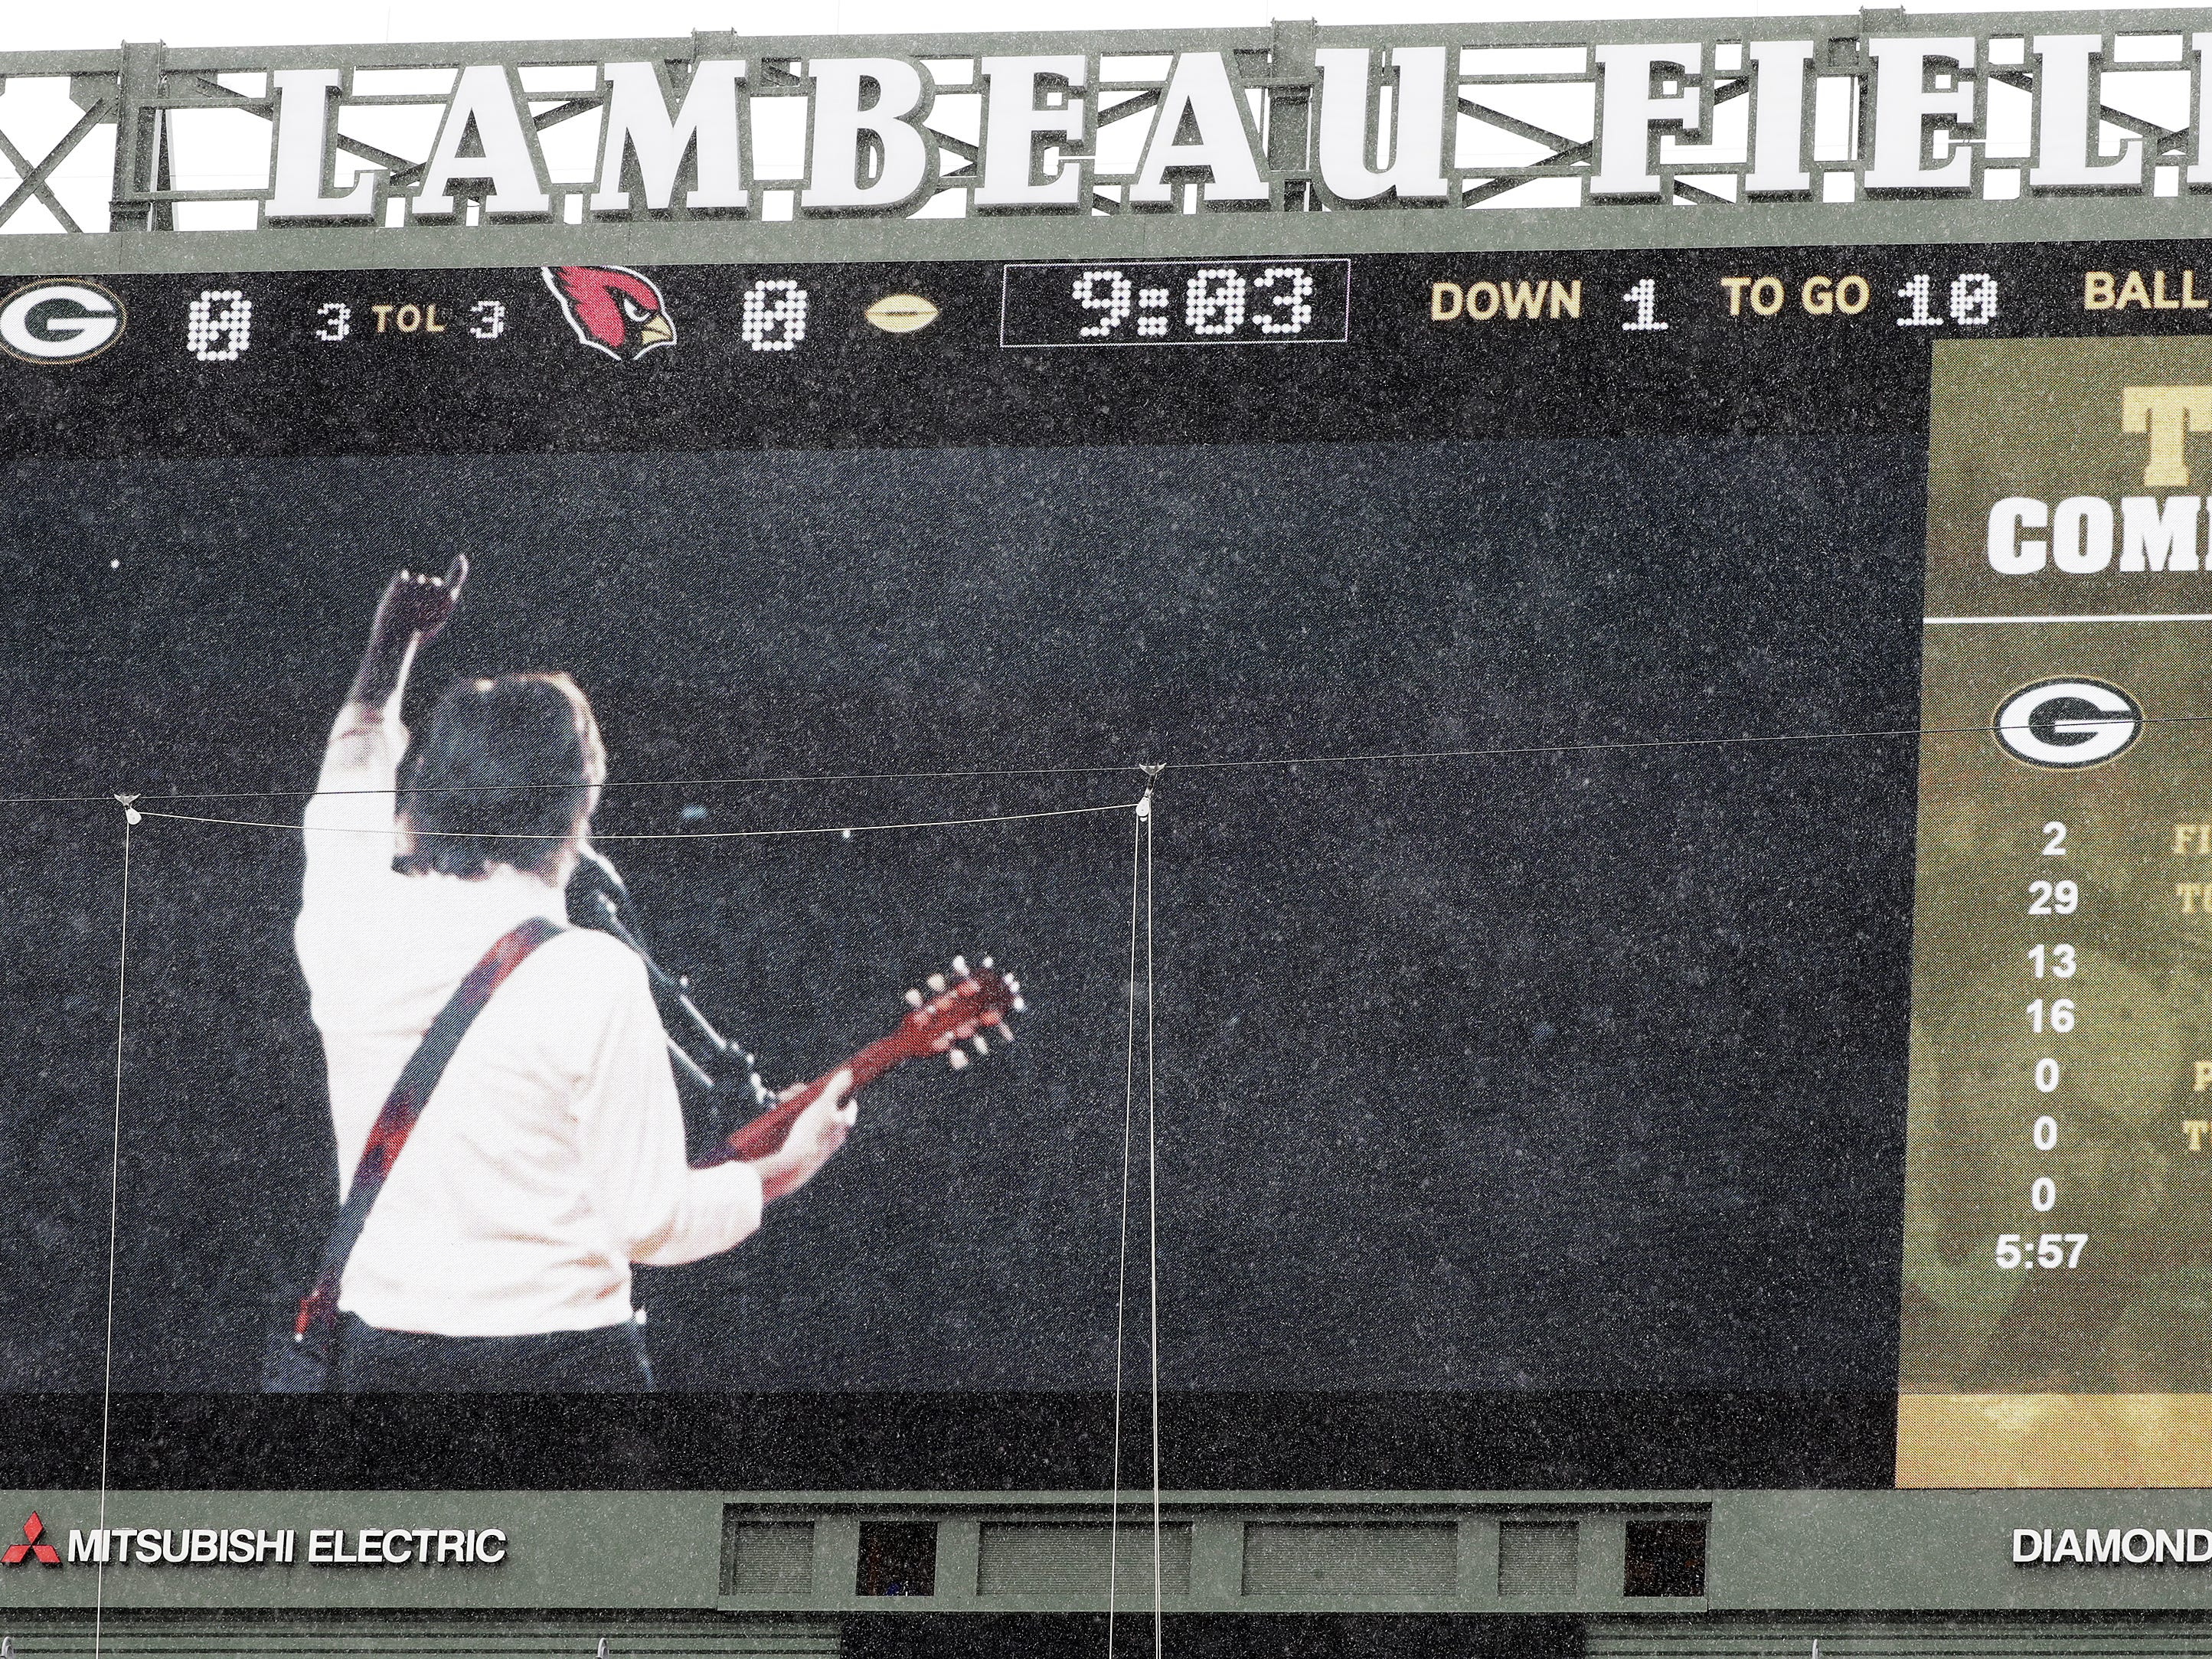 A video of Paul McCartney is played on the scoreboard during the Green Bay Packers game against the Arizona Cardinals at Lambeau Field on Sunday, December 2, 2018 in Green Bay, Wis.